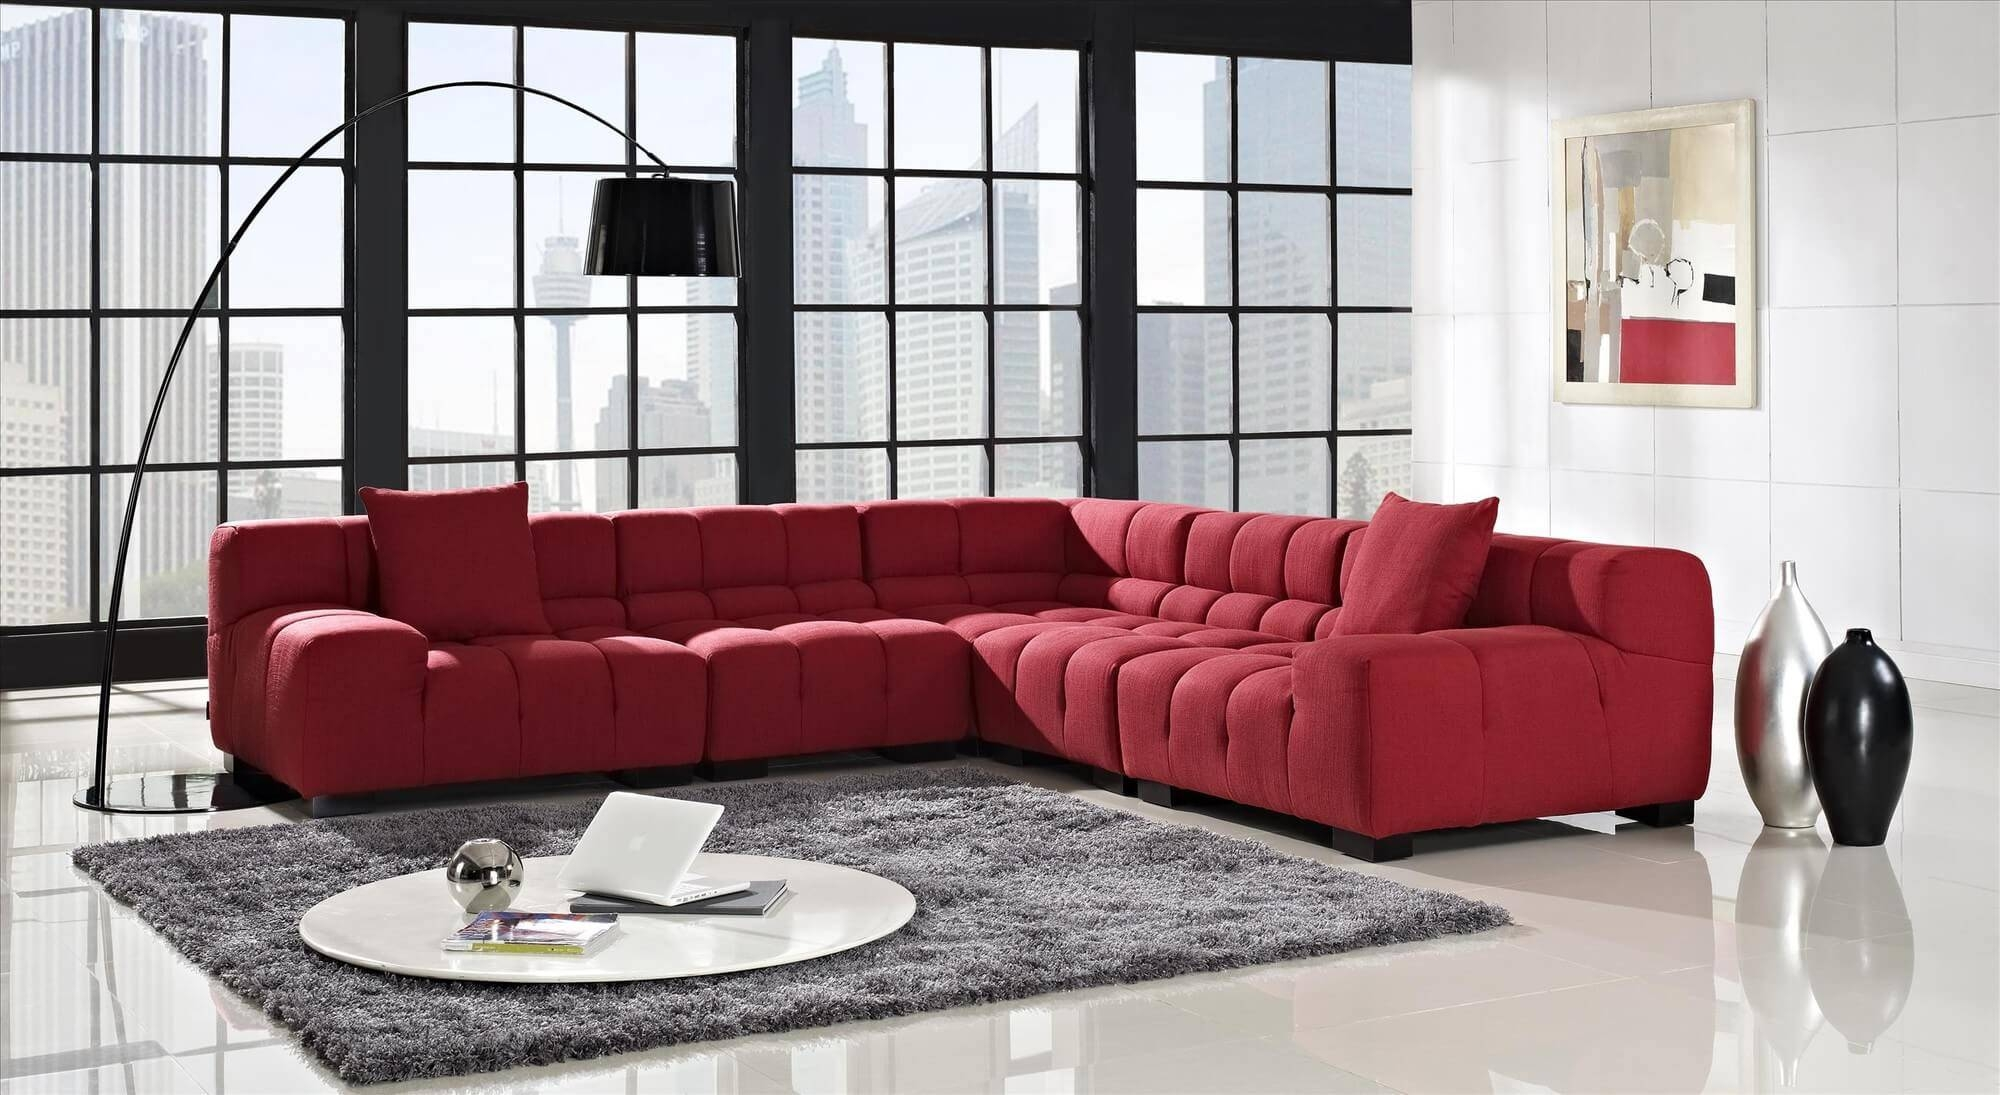 Luxury Tufted Sectionals Sofas 71 In 10 Foot Sectional Sofa With inside 10 Foot Sectional Sofa (Image 22 of 30)